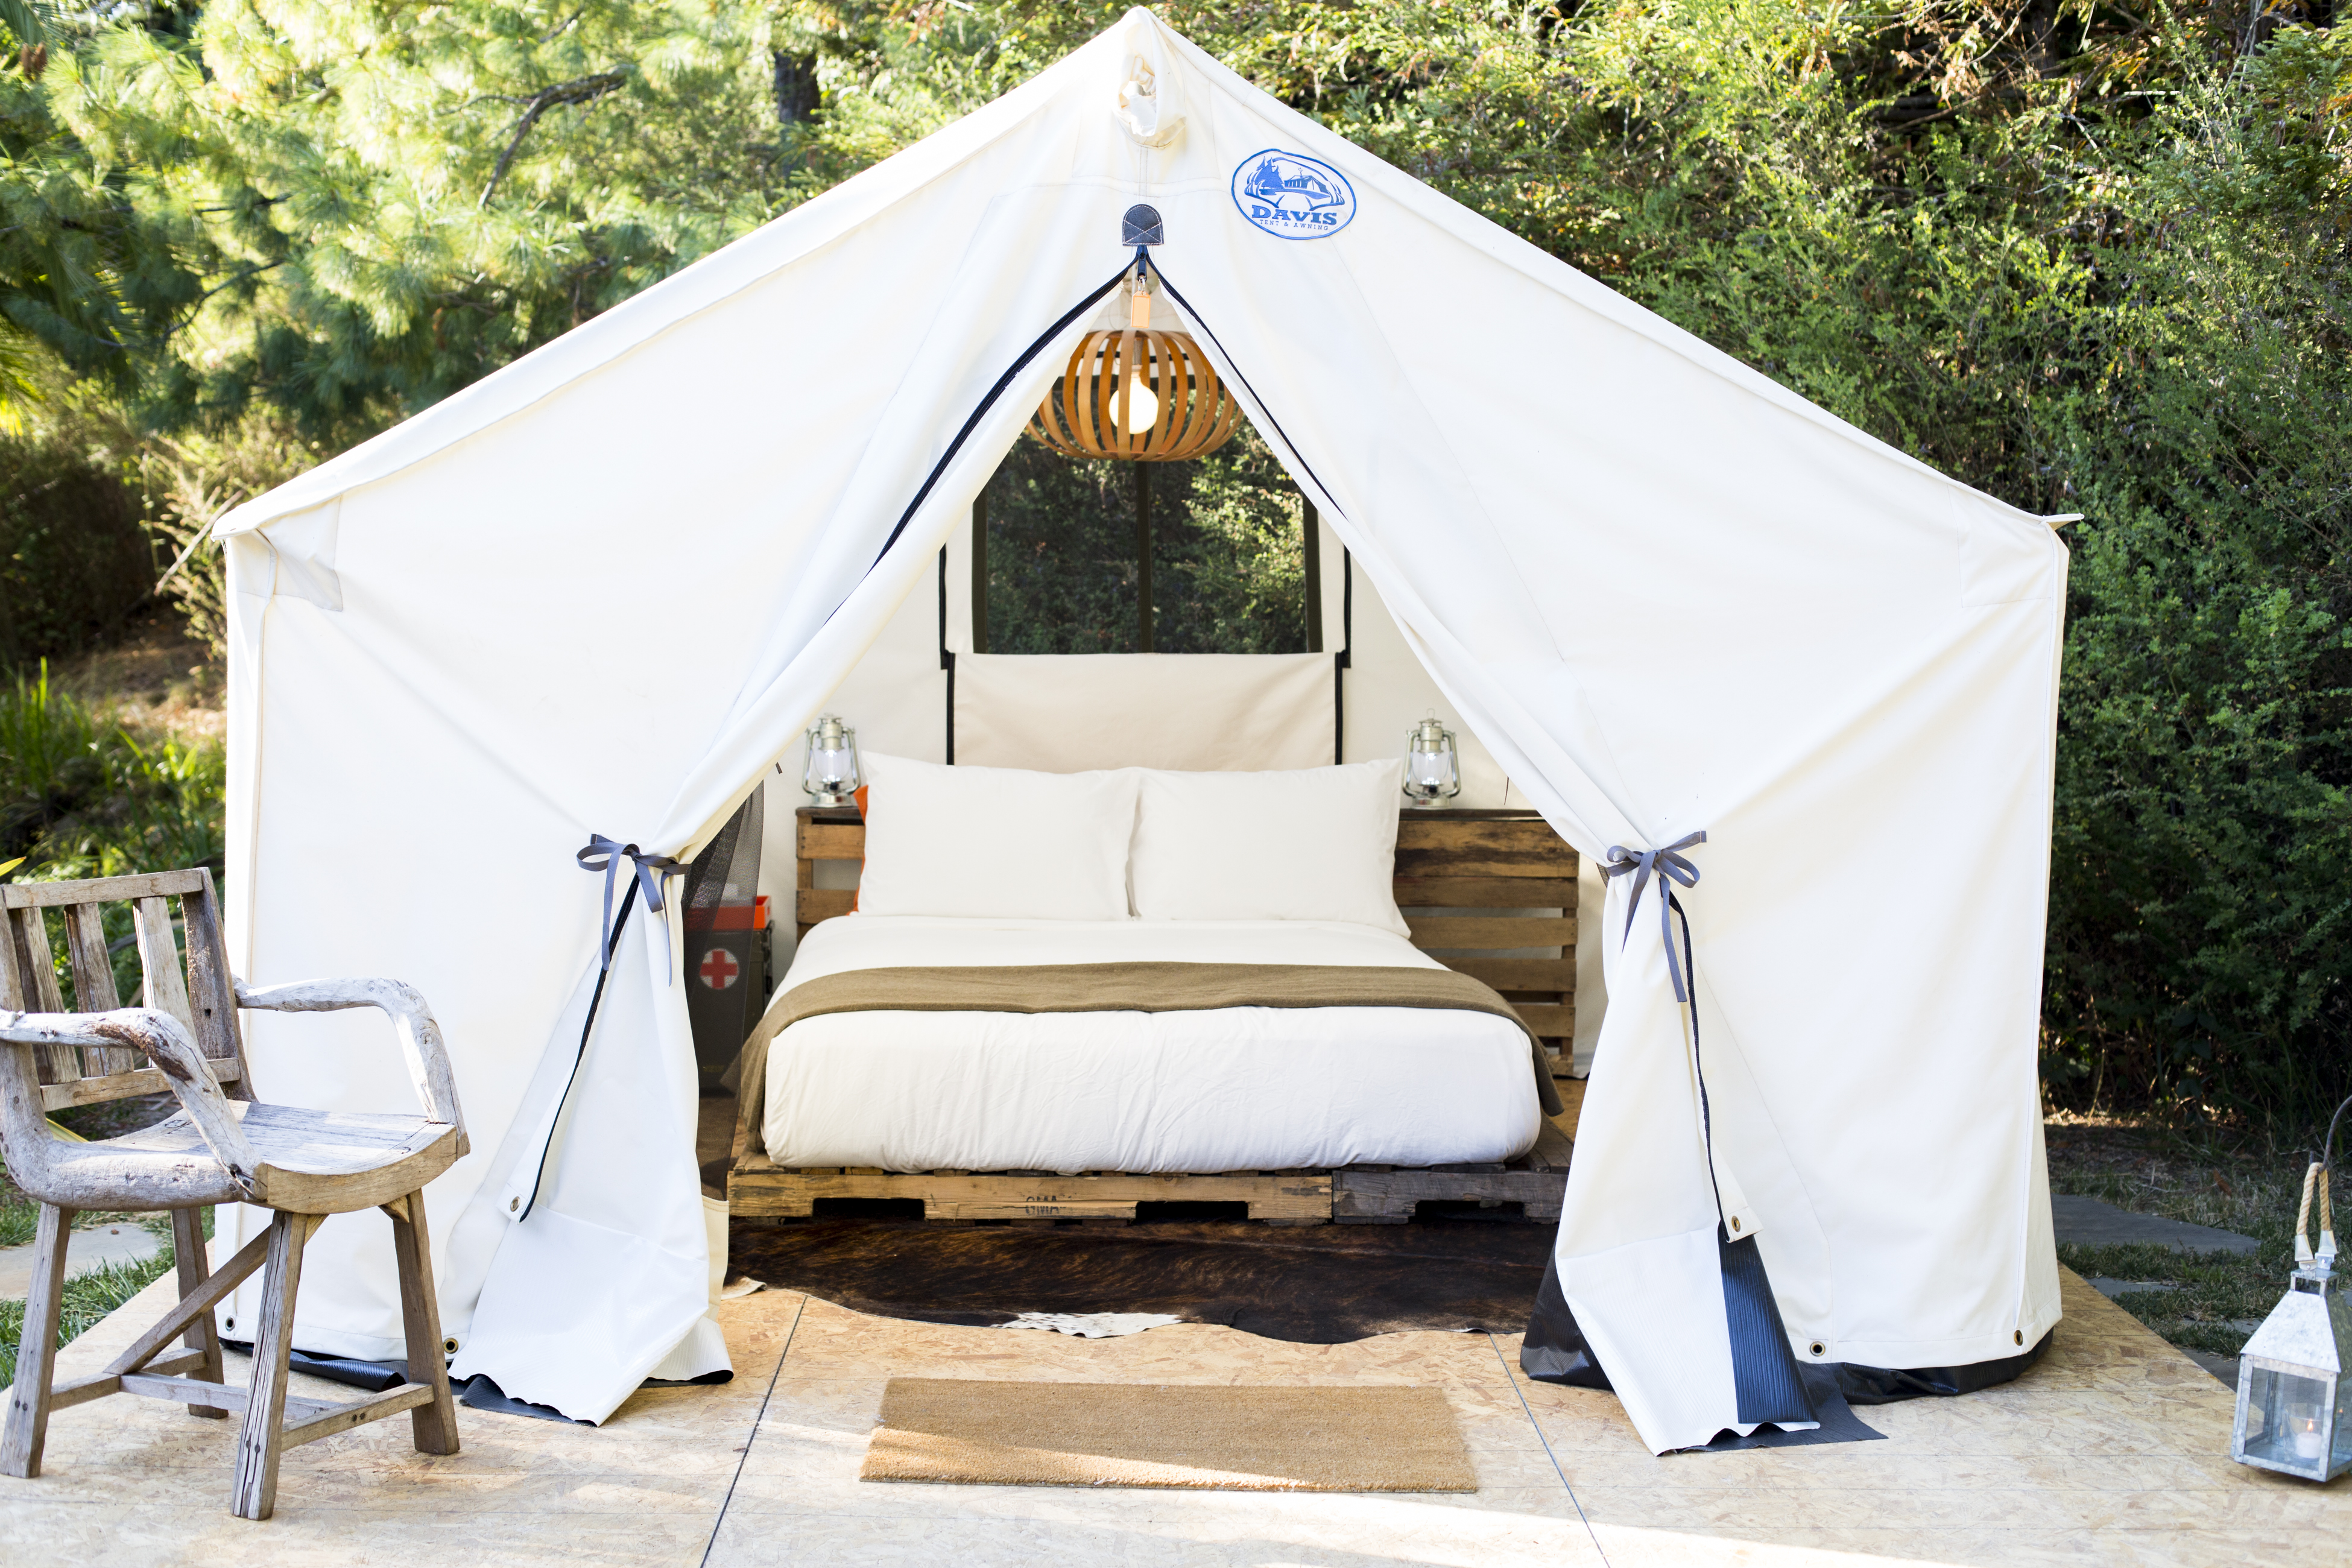 Glamping at Boon Hotel + Spa, Guerneville, Sonoma County, California